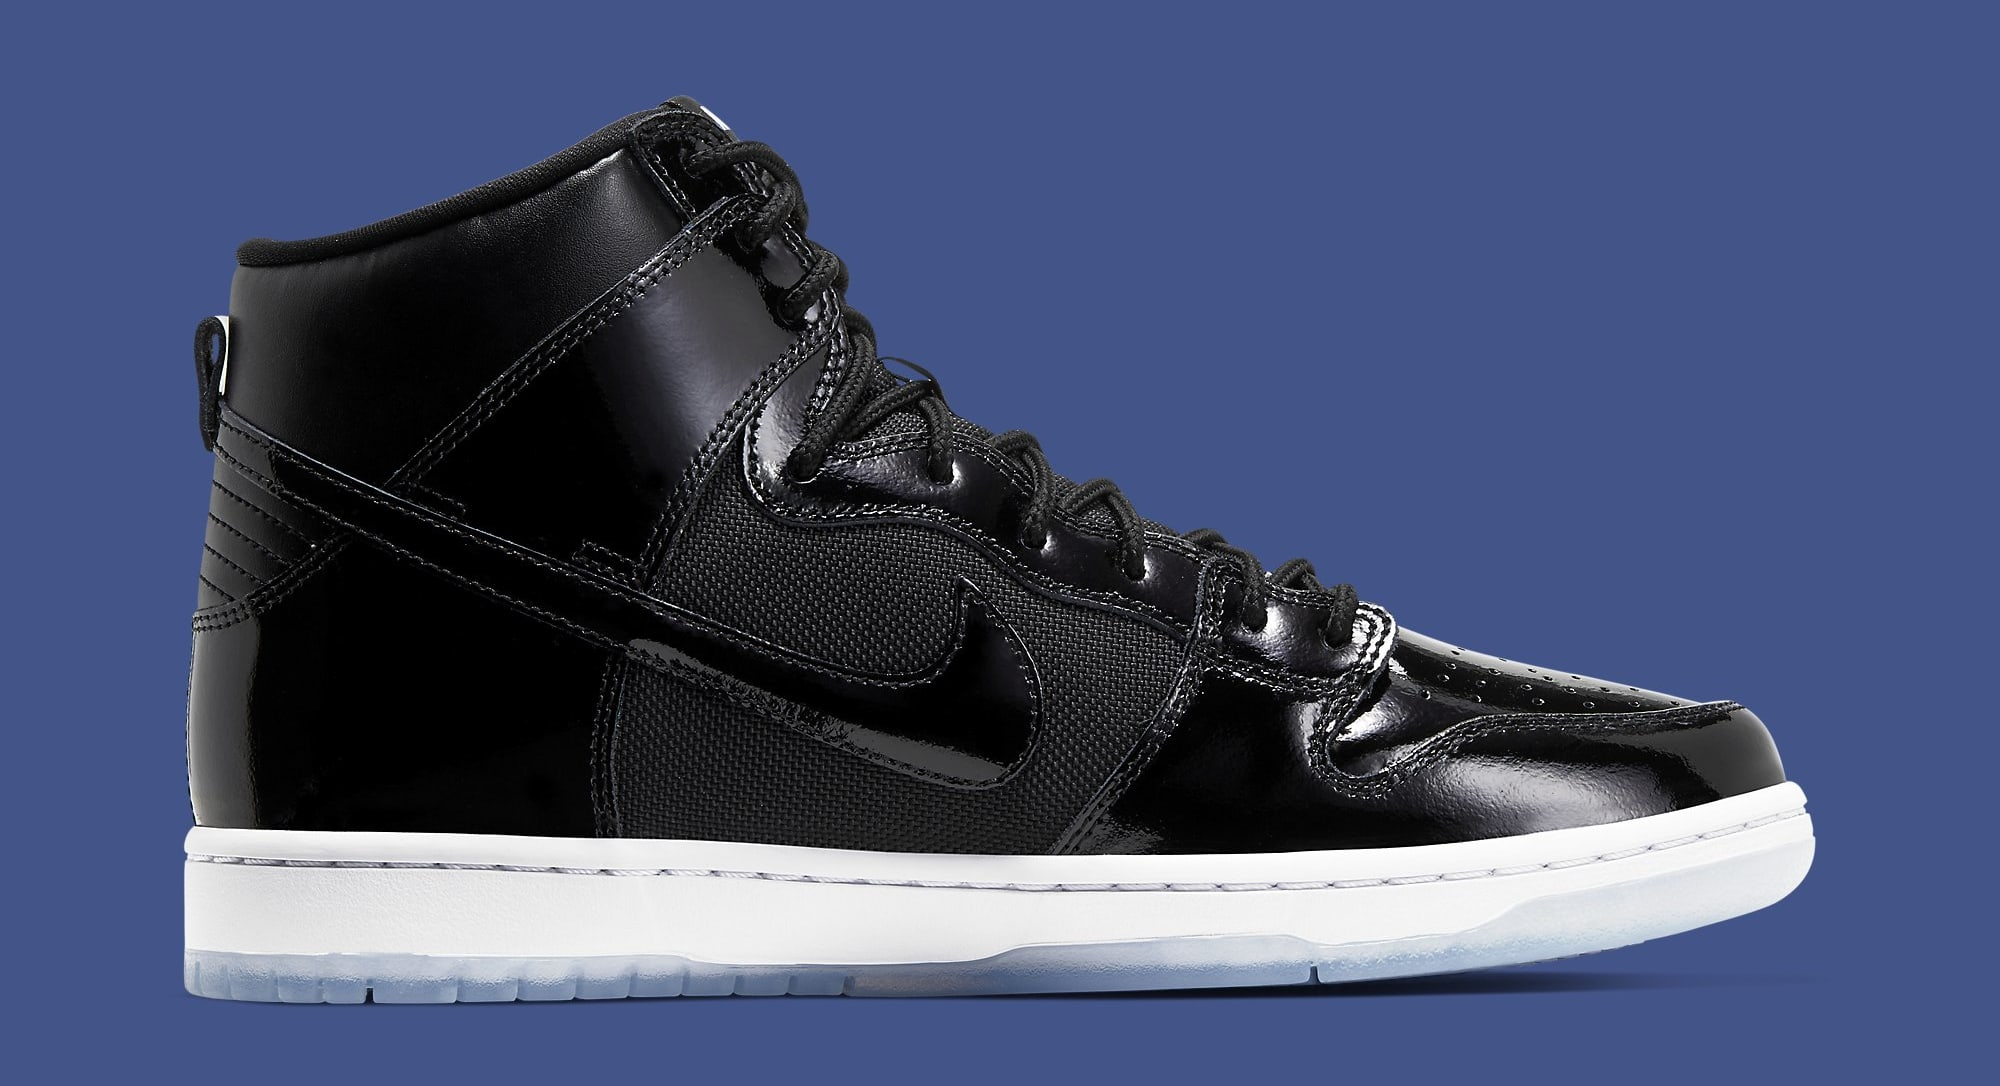 nike-sb-dunk-high-space-jam-bq6826-002-medial